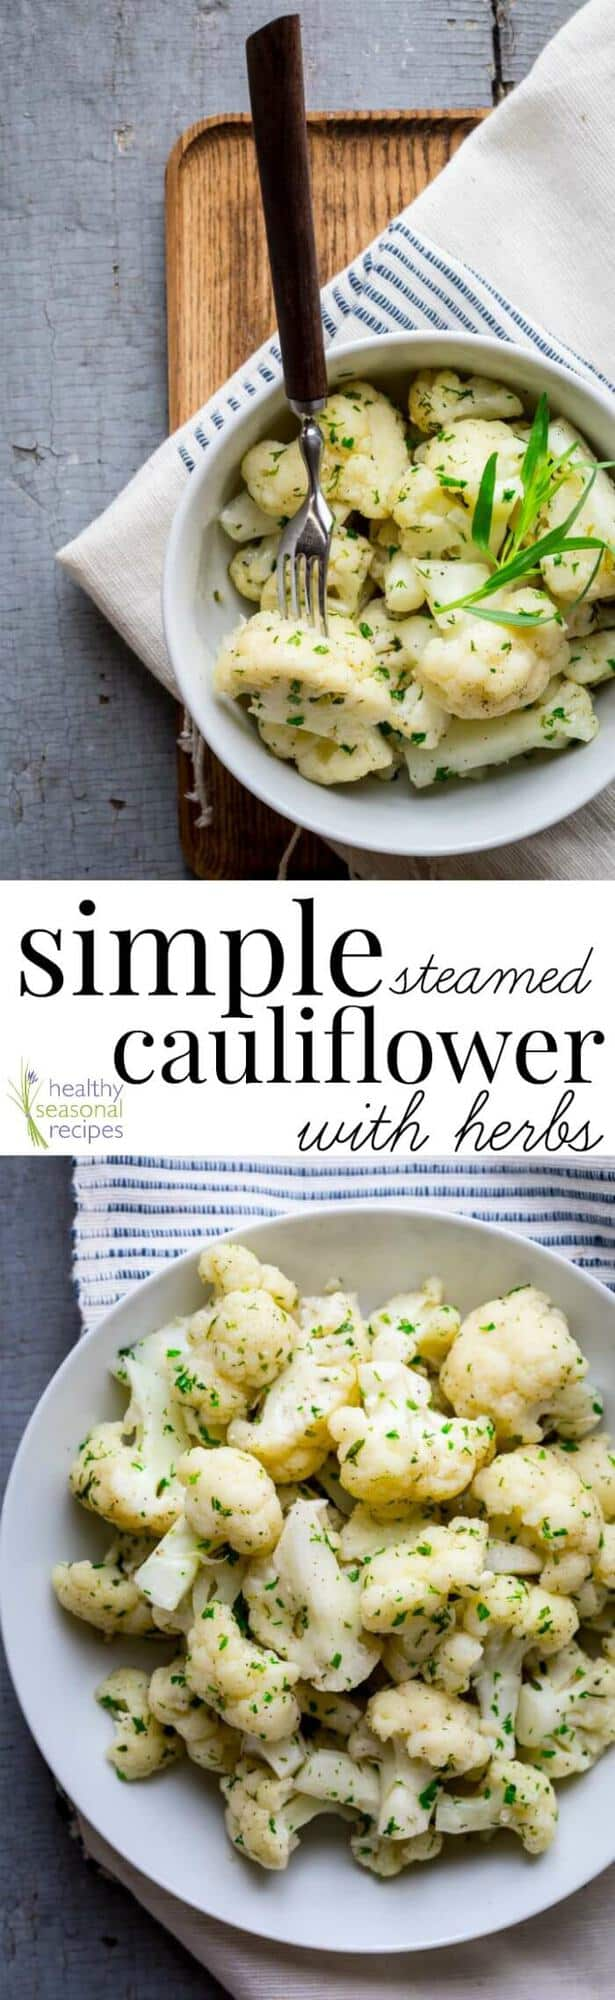 A bowl of Steamed cauliflower with text overlay